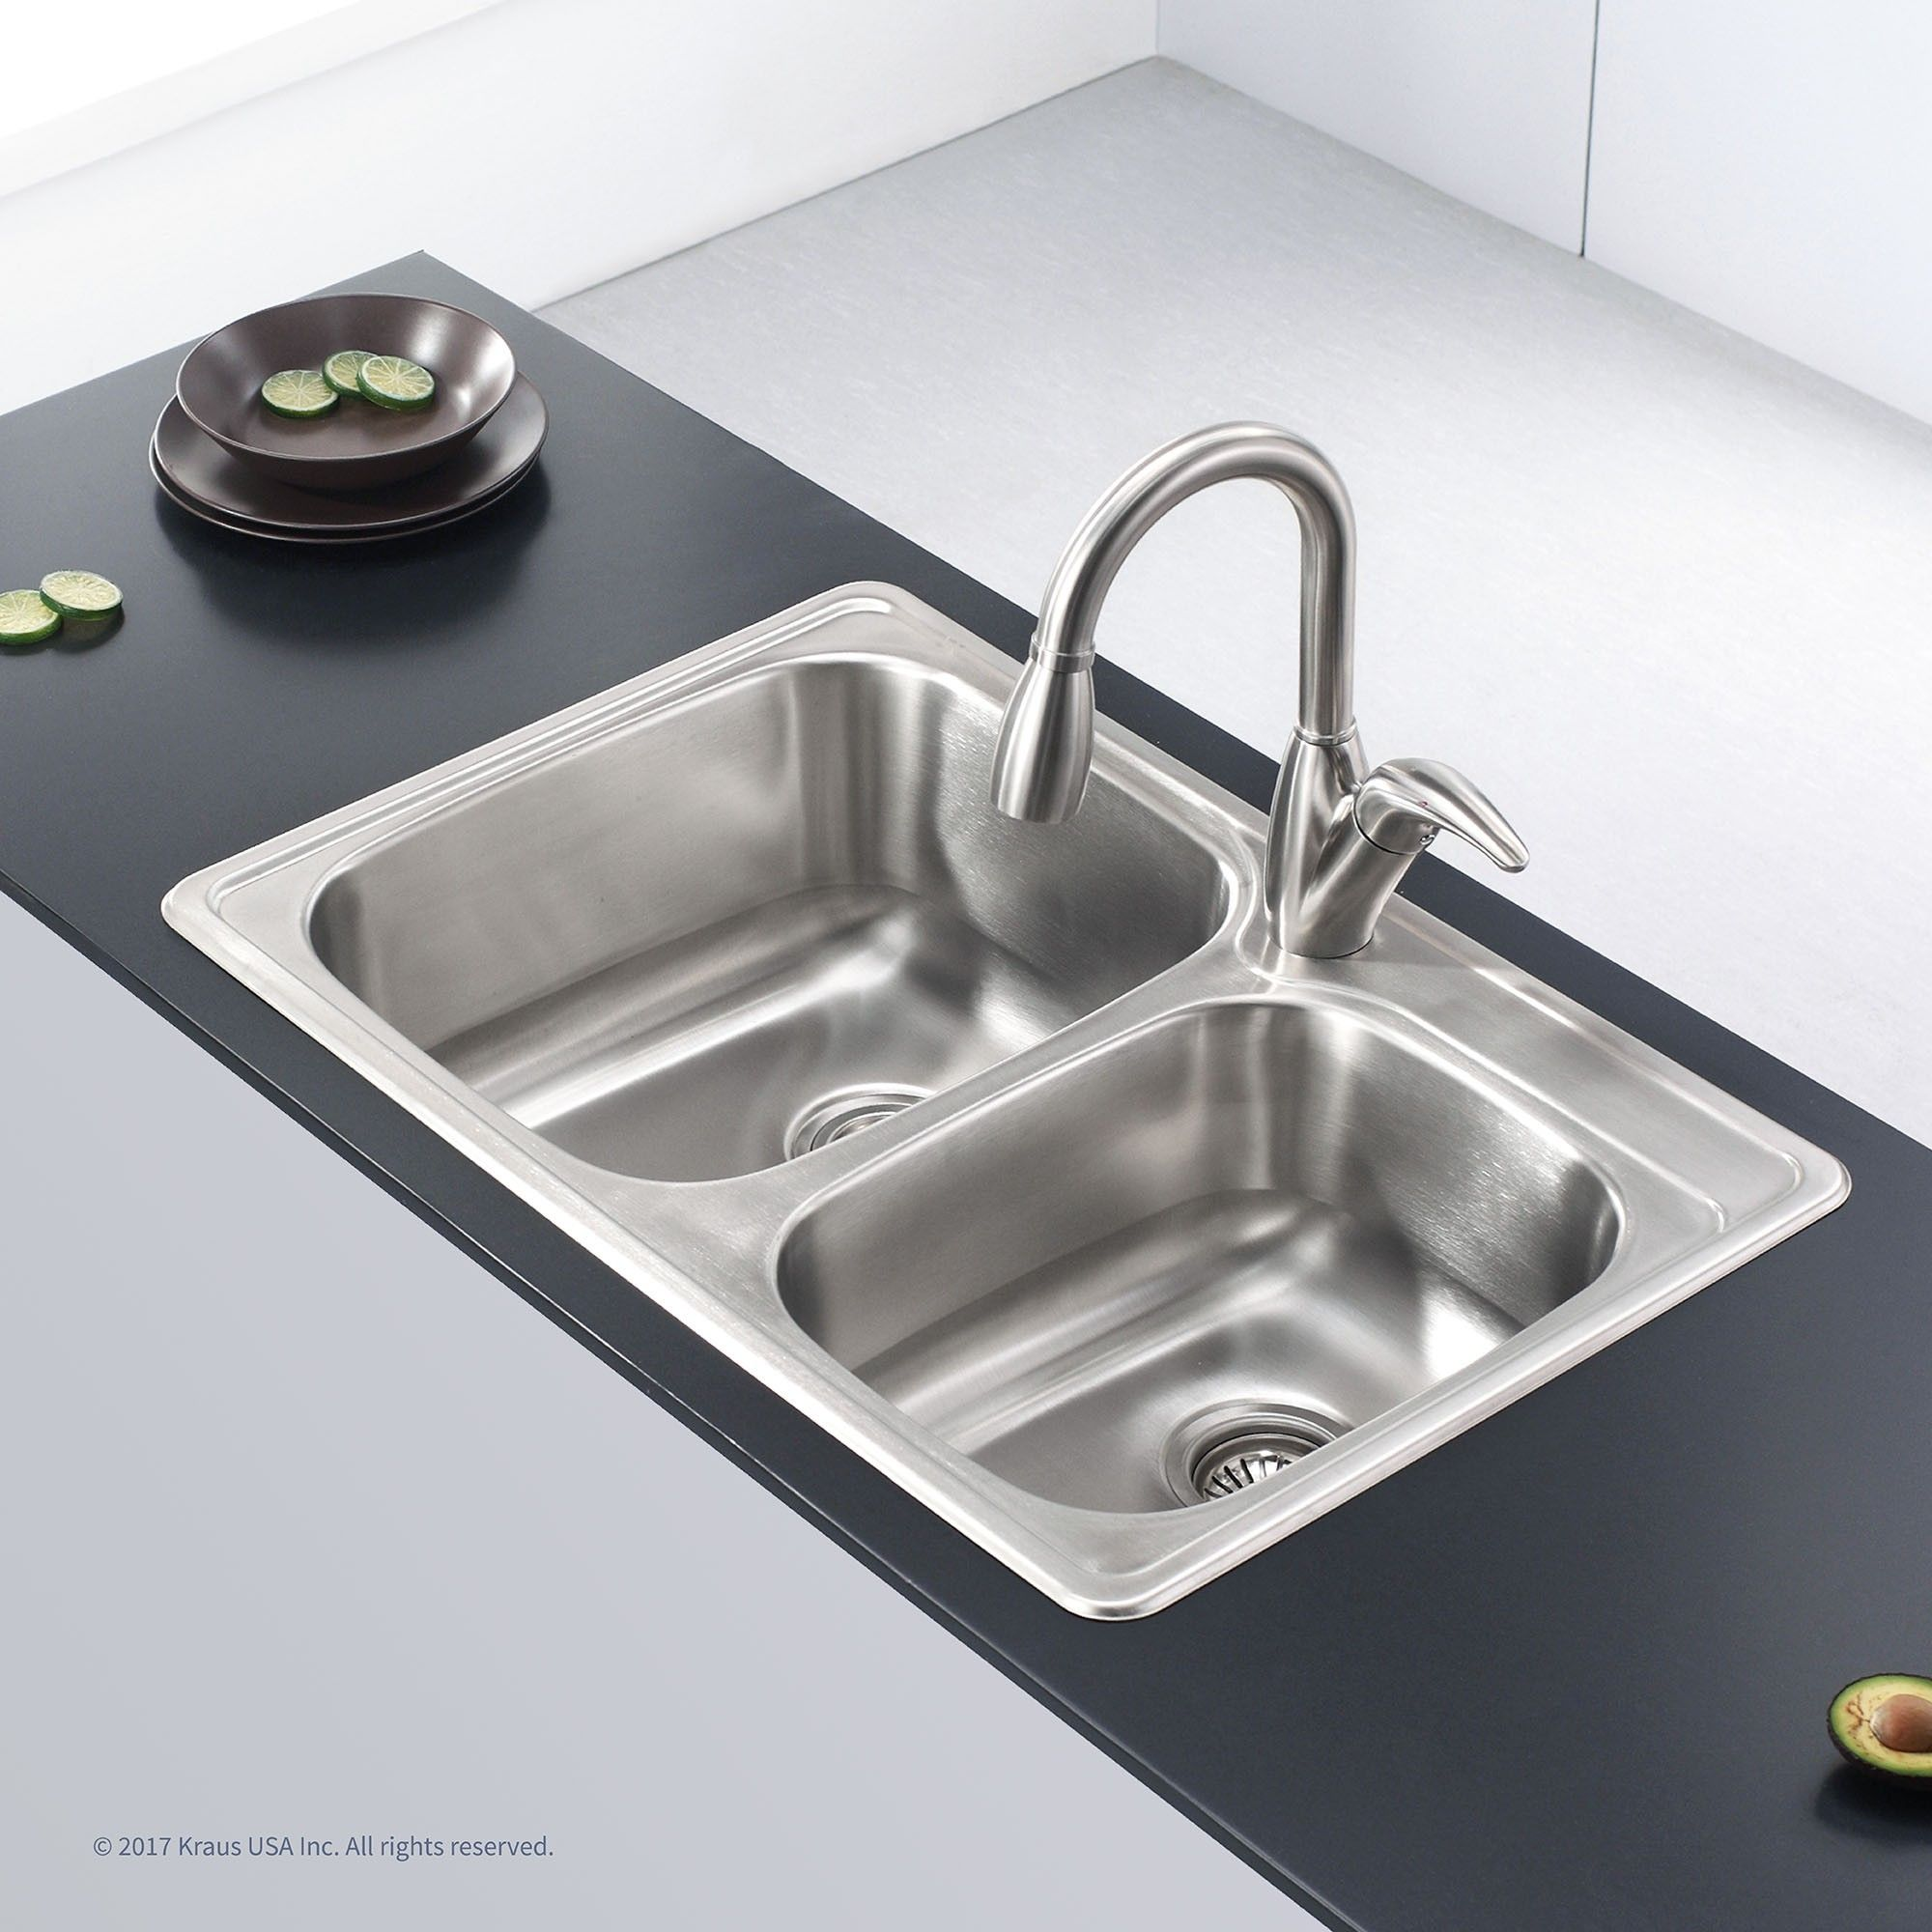 Stainless steel x double basin drop in kitchen sink kraus